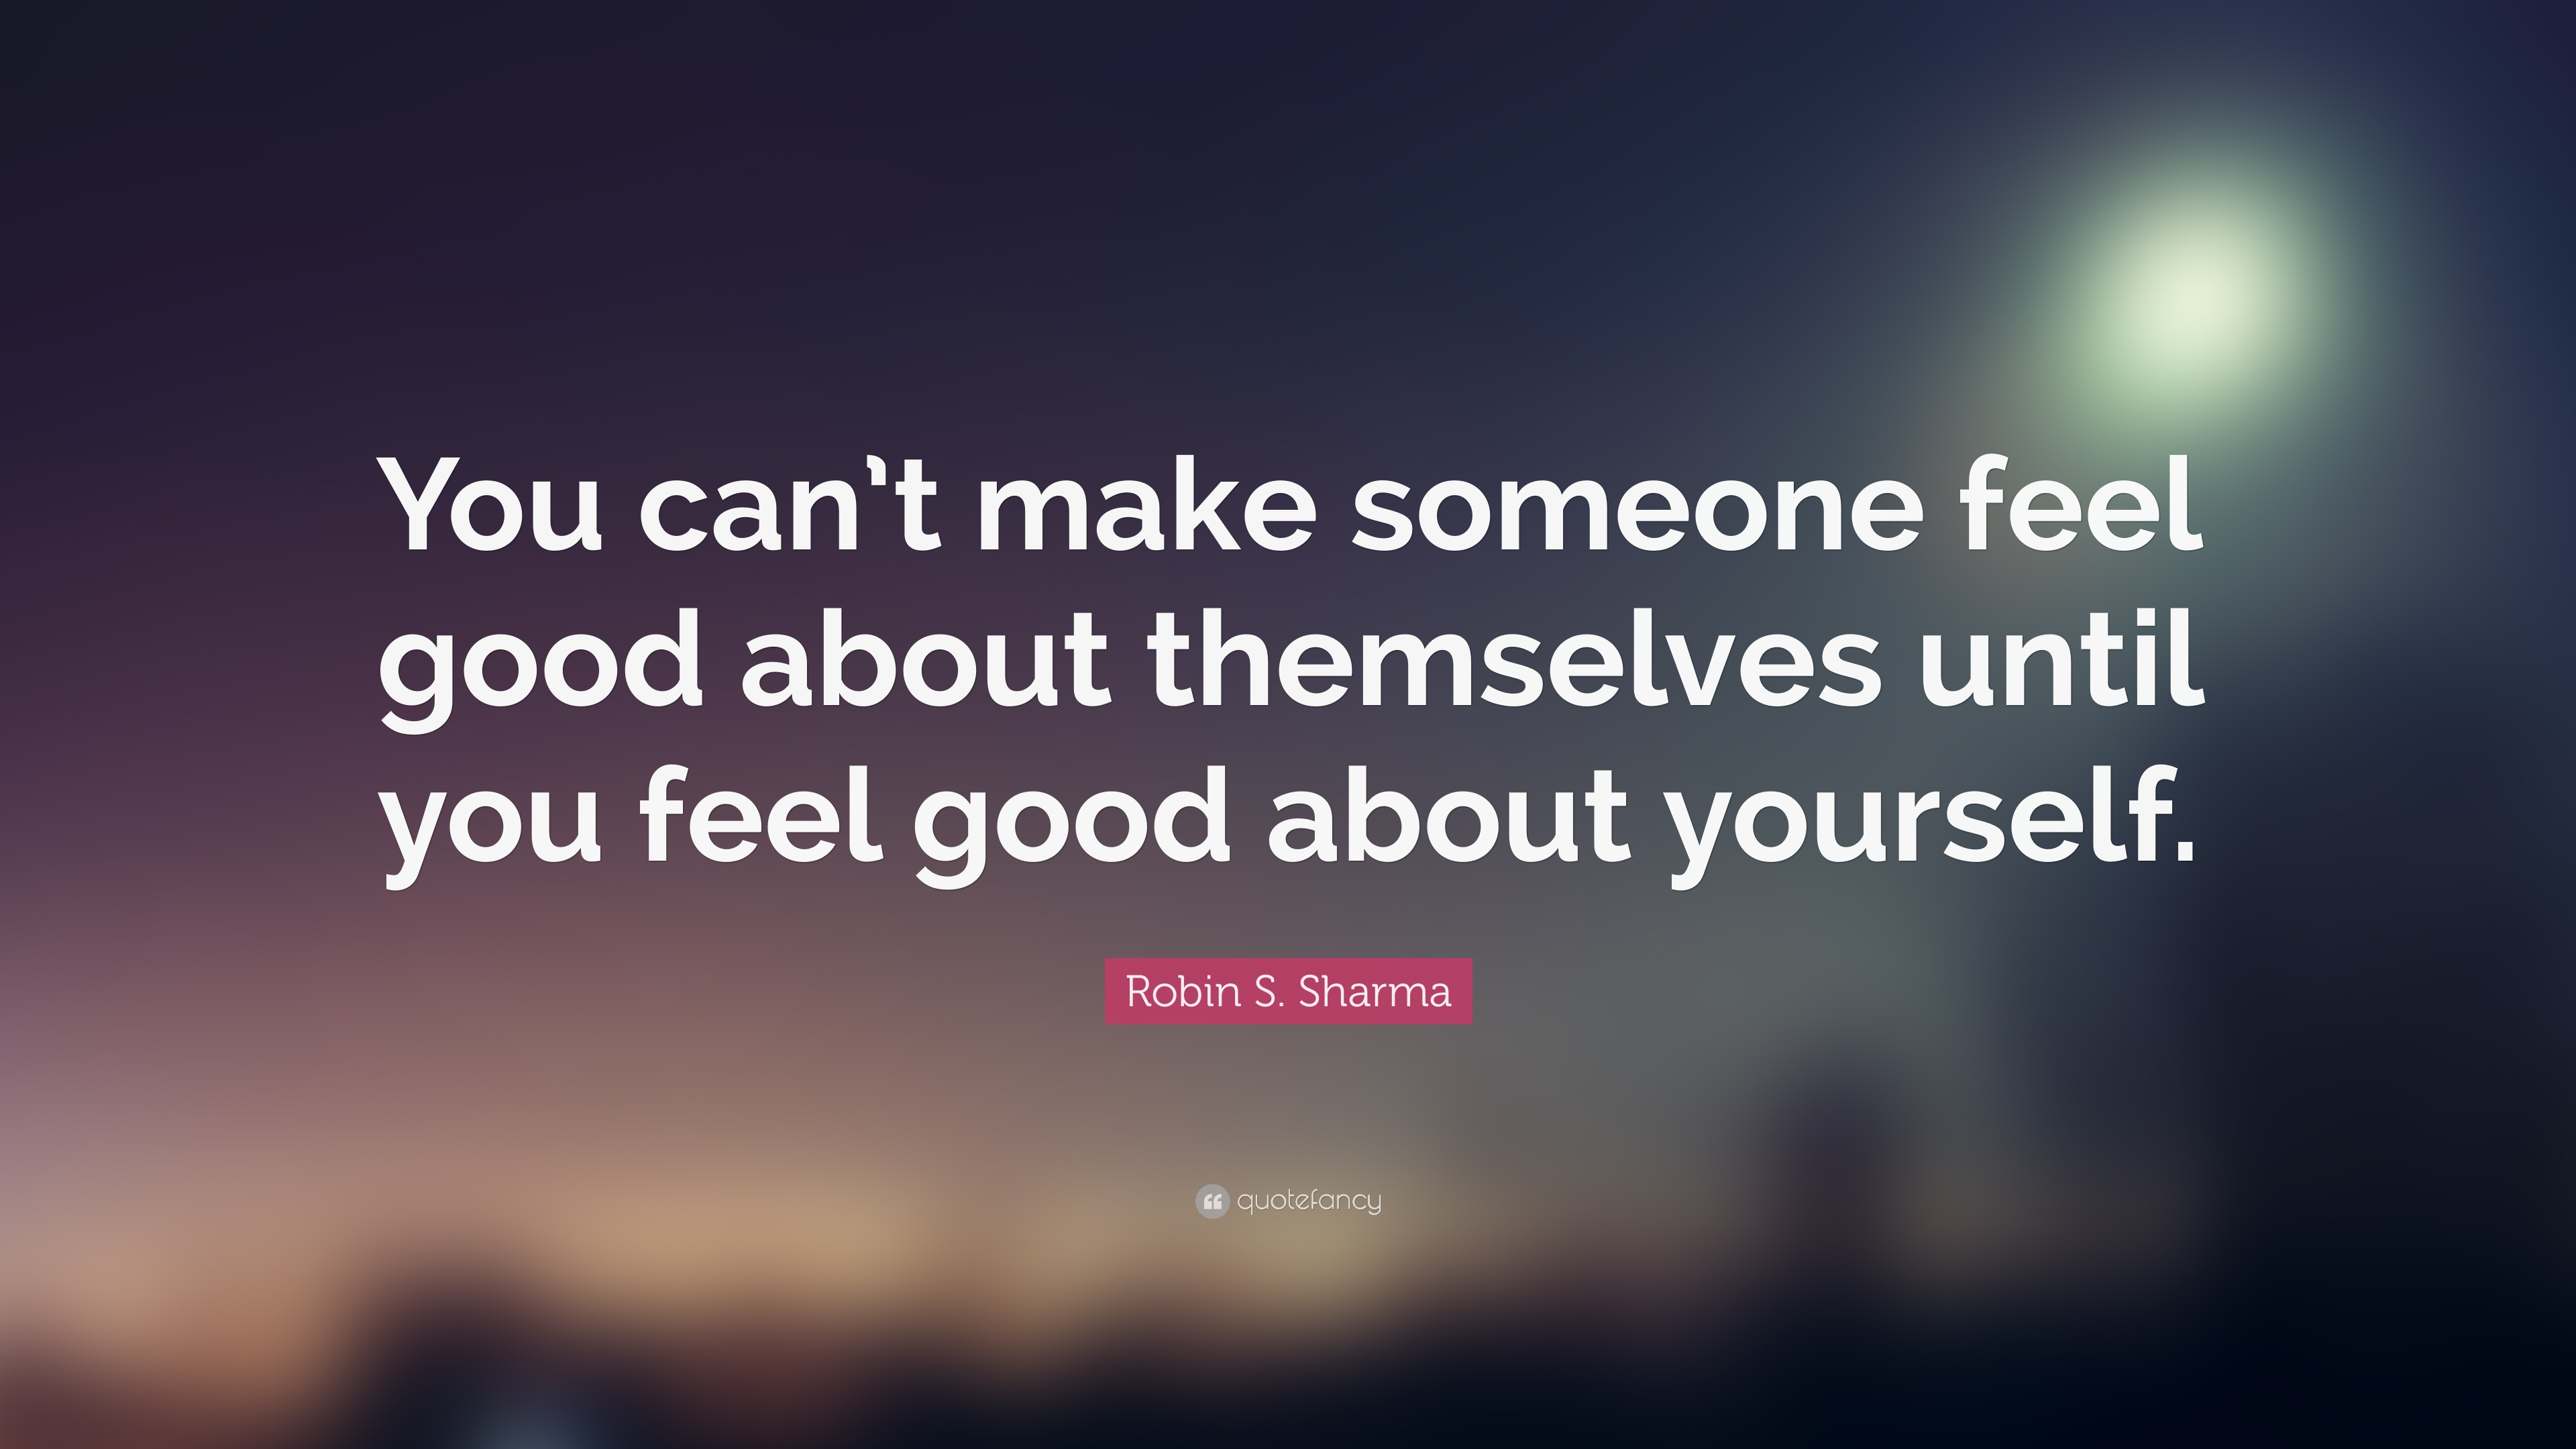 Quotes to make you feel